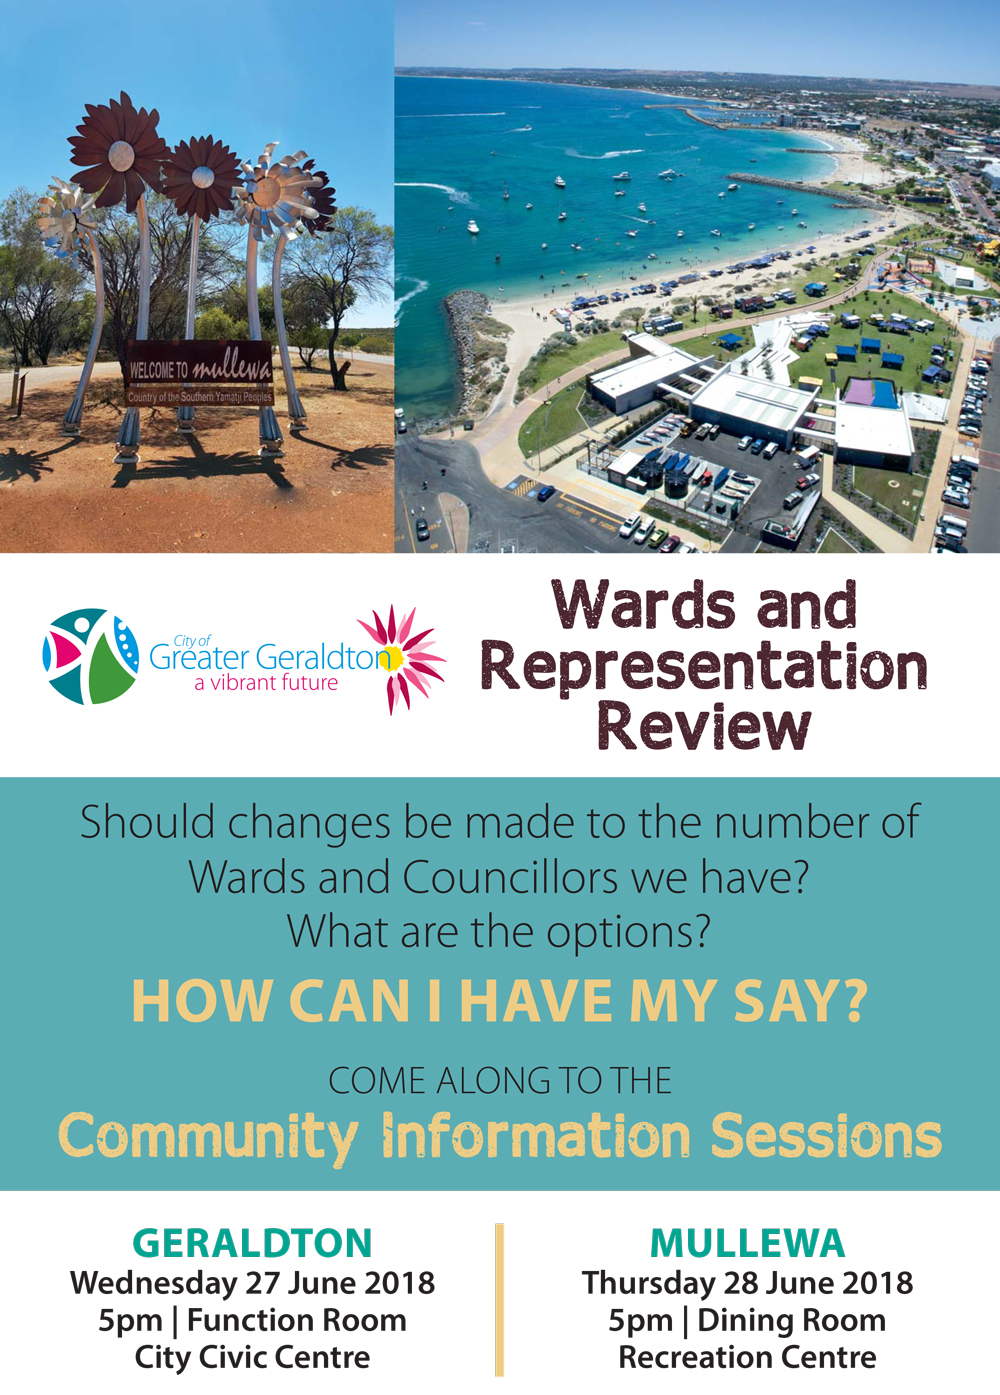 Ward-and-Representation-Review-Flyer-[A4].jpg